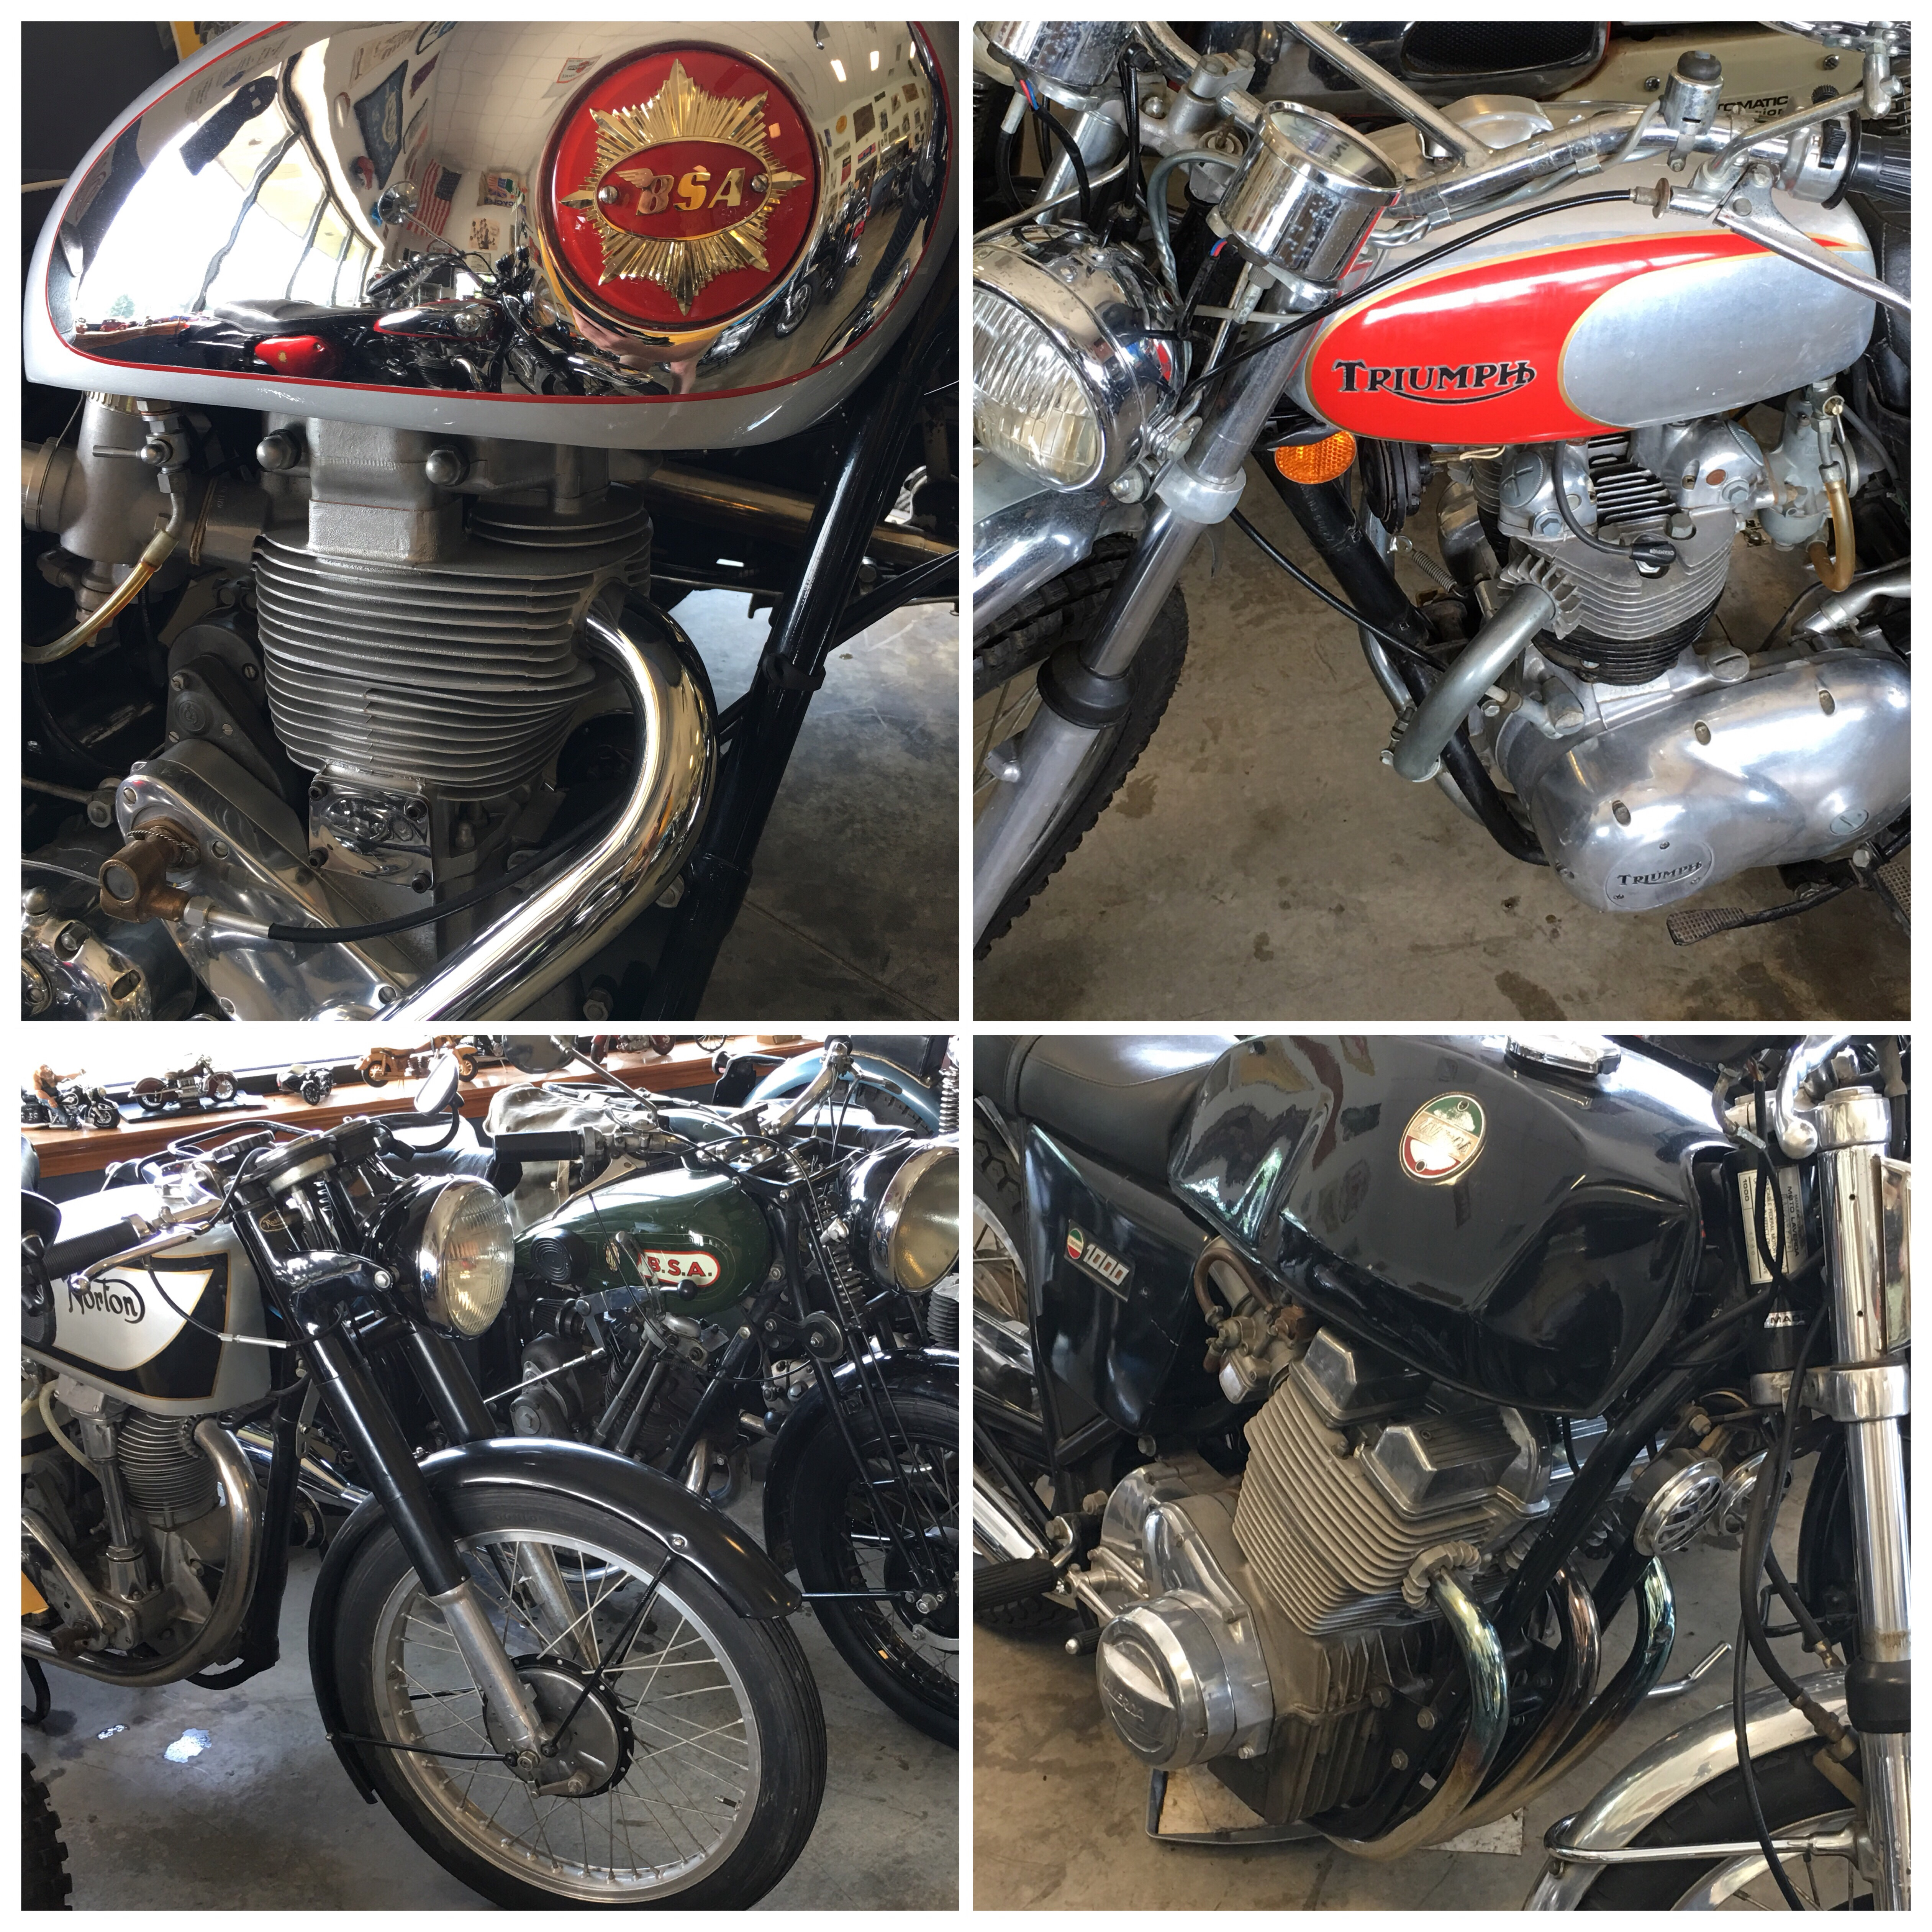 Four Square More Offerings From The Ringwood Motorcycle Emporium Delicious